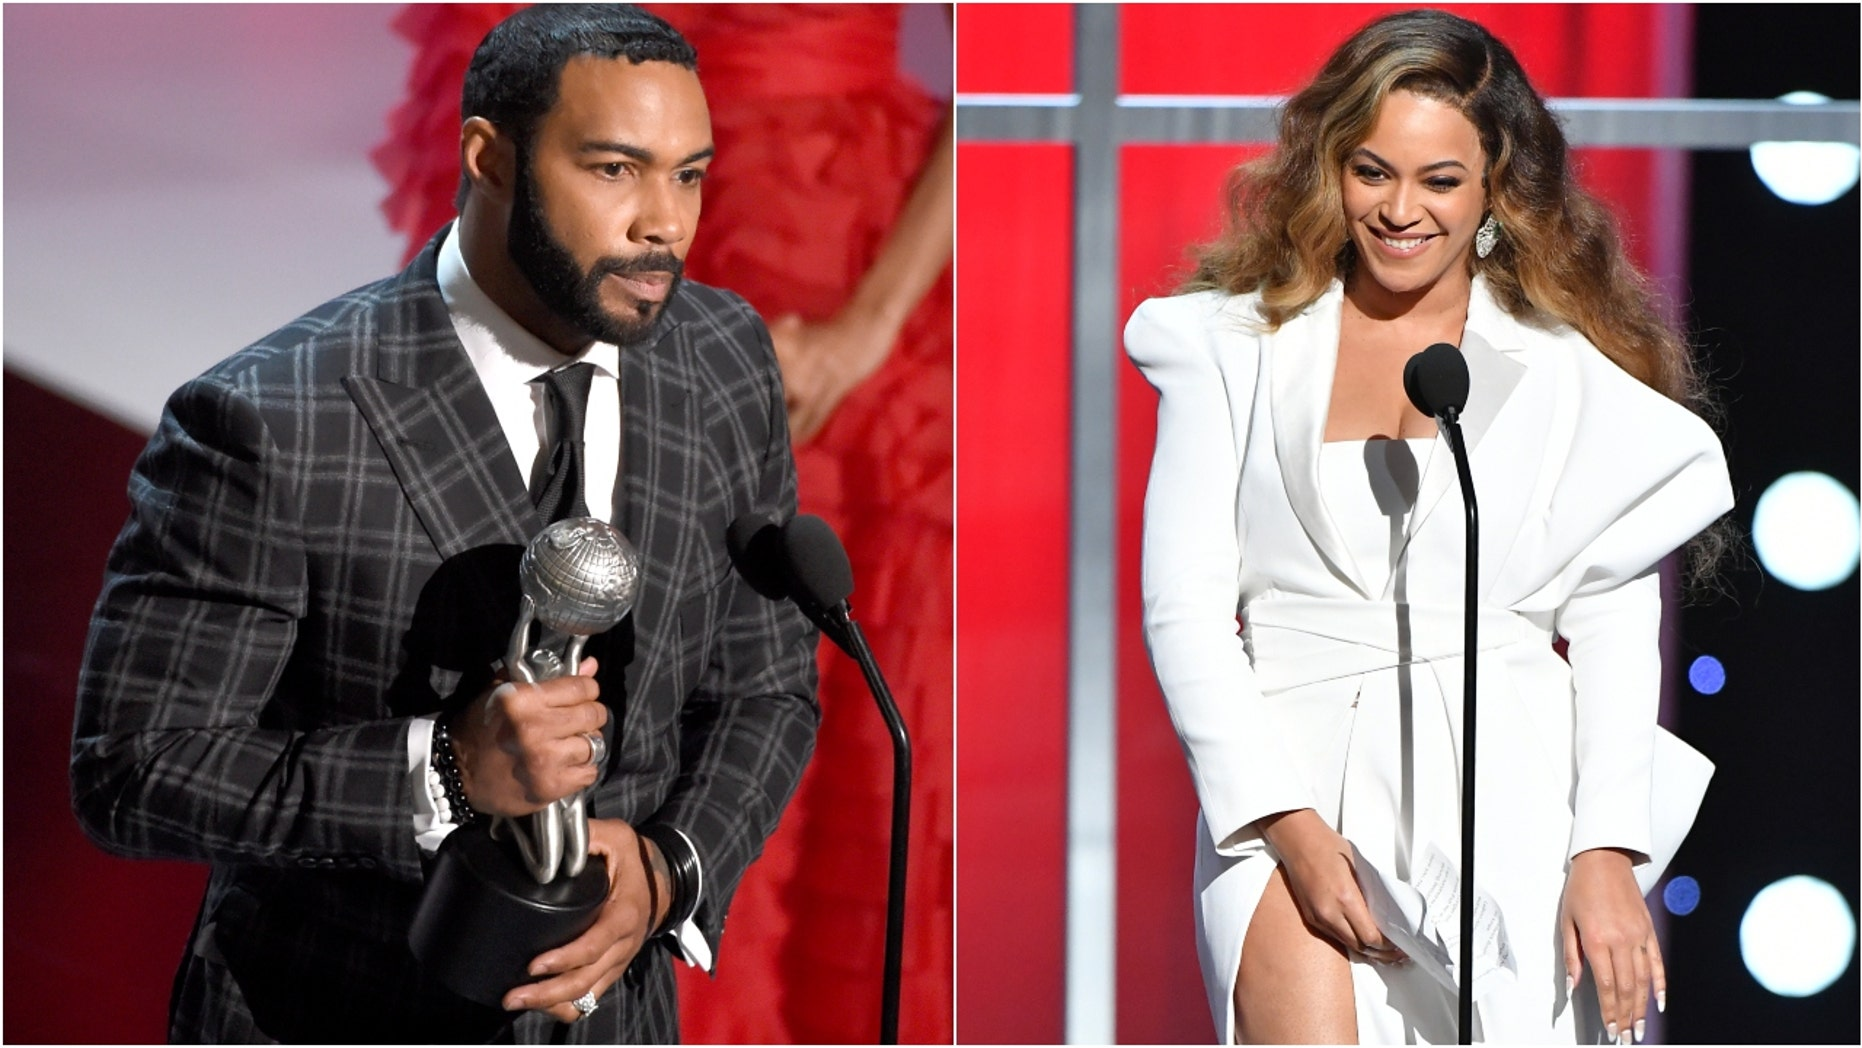 Omari Hardwick and Beyoncé attend 50th NAACP Image Awards. (Photo: Chris Pizzello/Invision/AP and Earl Gibson III/Getty Images for NAACP)